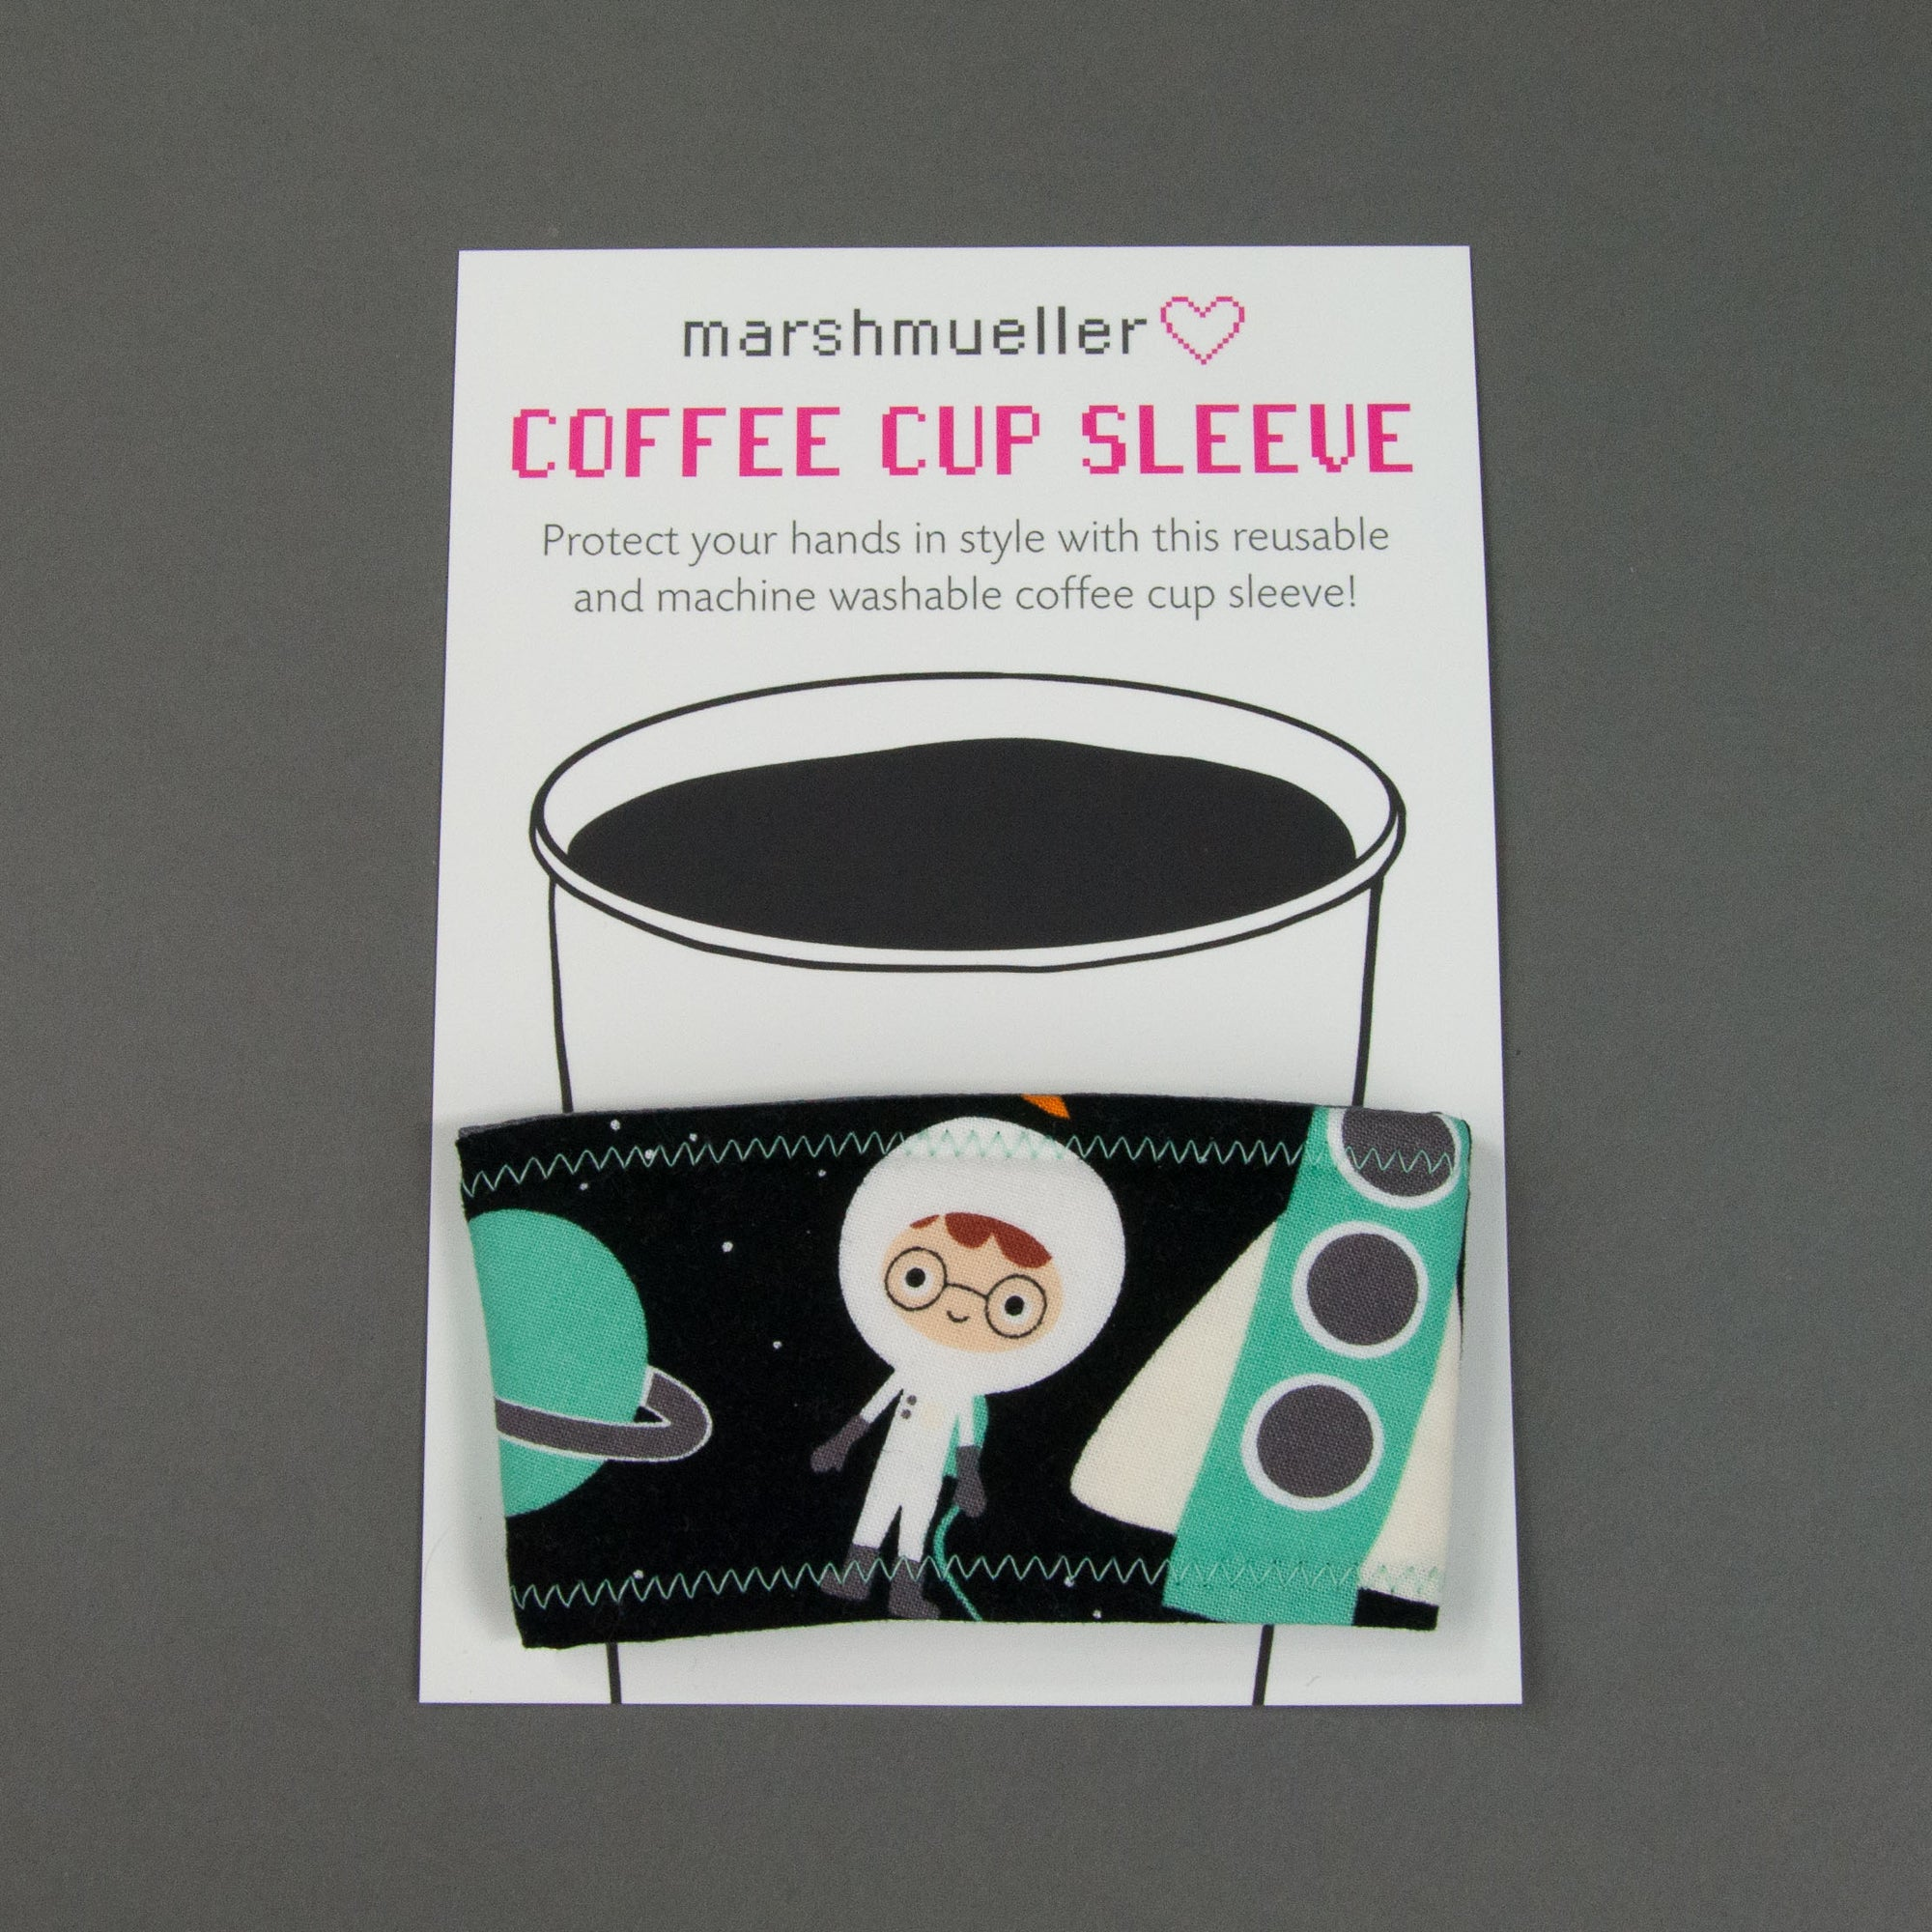 Space Explorers Coffee Cup Sleeve, Coffee Cup Sleeve, - MarshMueller